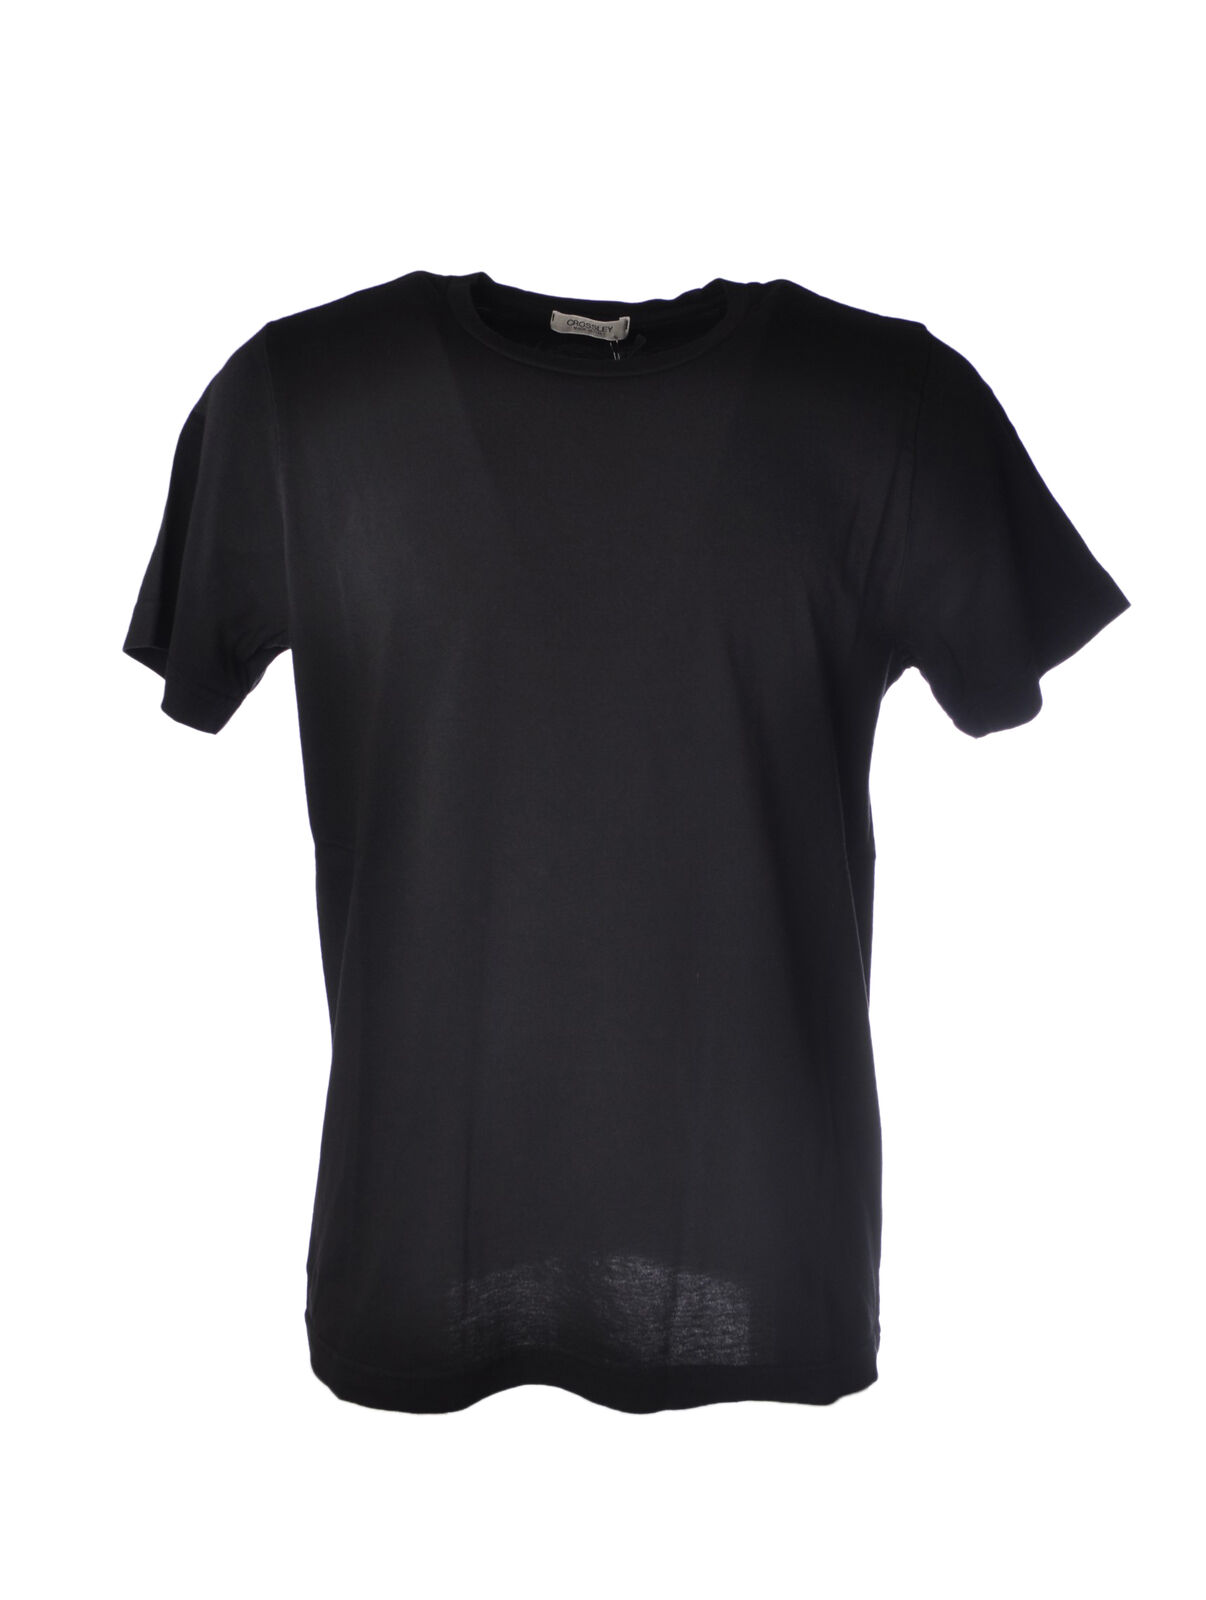 CROSSLEY - Topwear-T-shirts - Mann - black - 5029616N184357